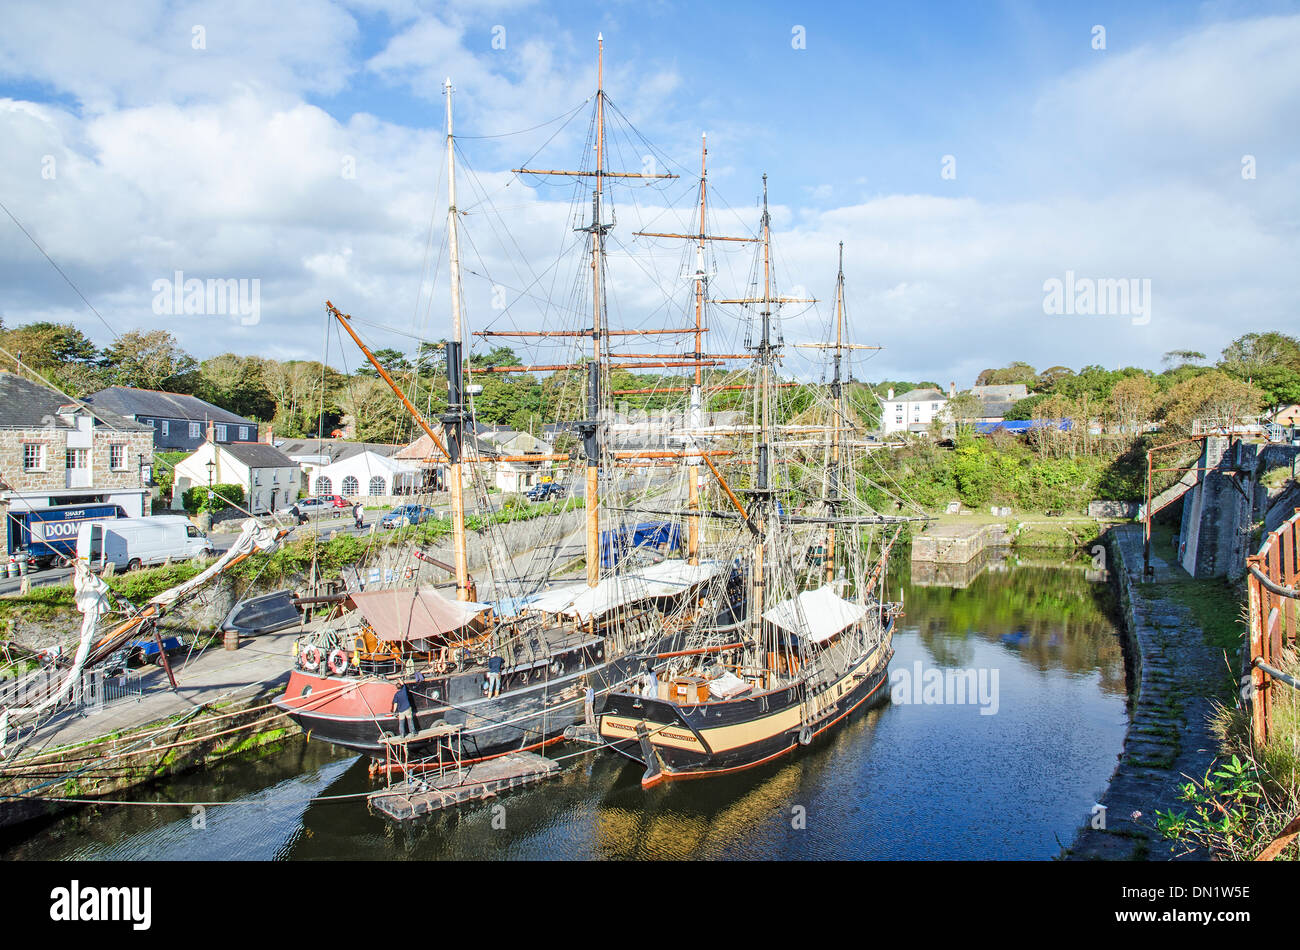 Tall ships in the Historic port of Charlestown, Cornwall, UK - Stock Image